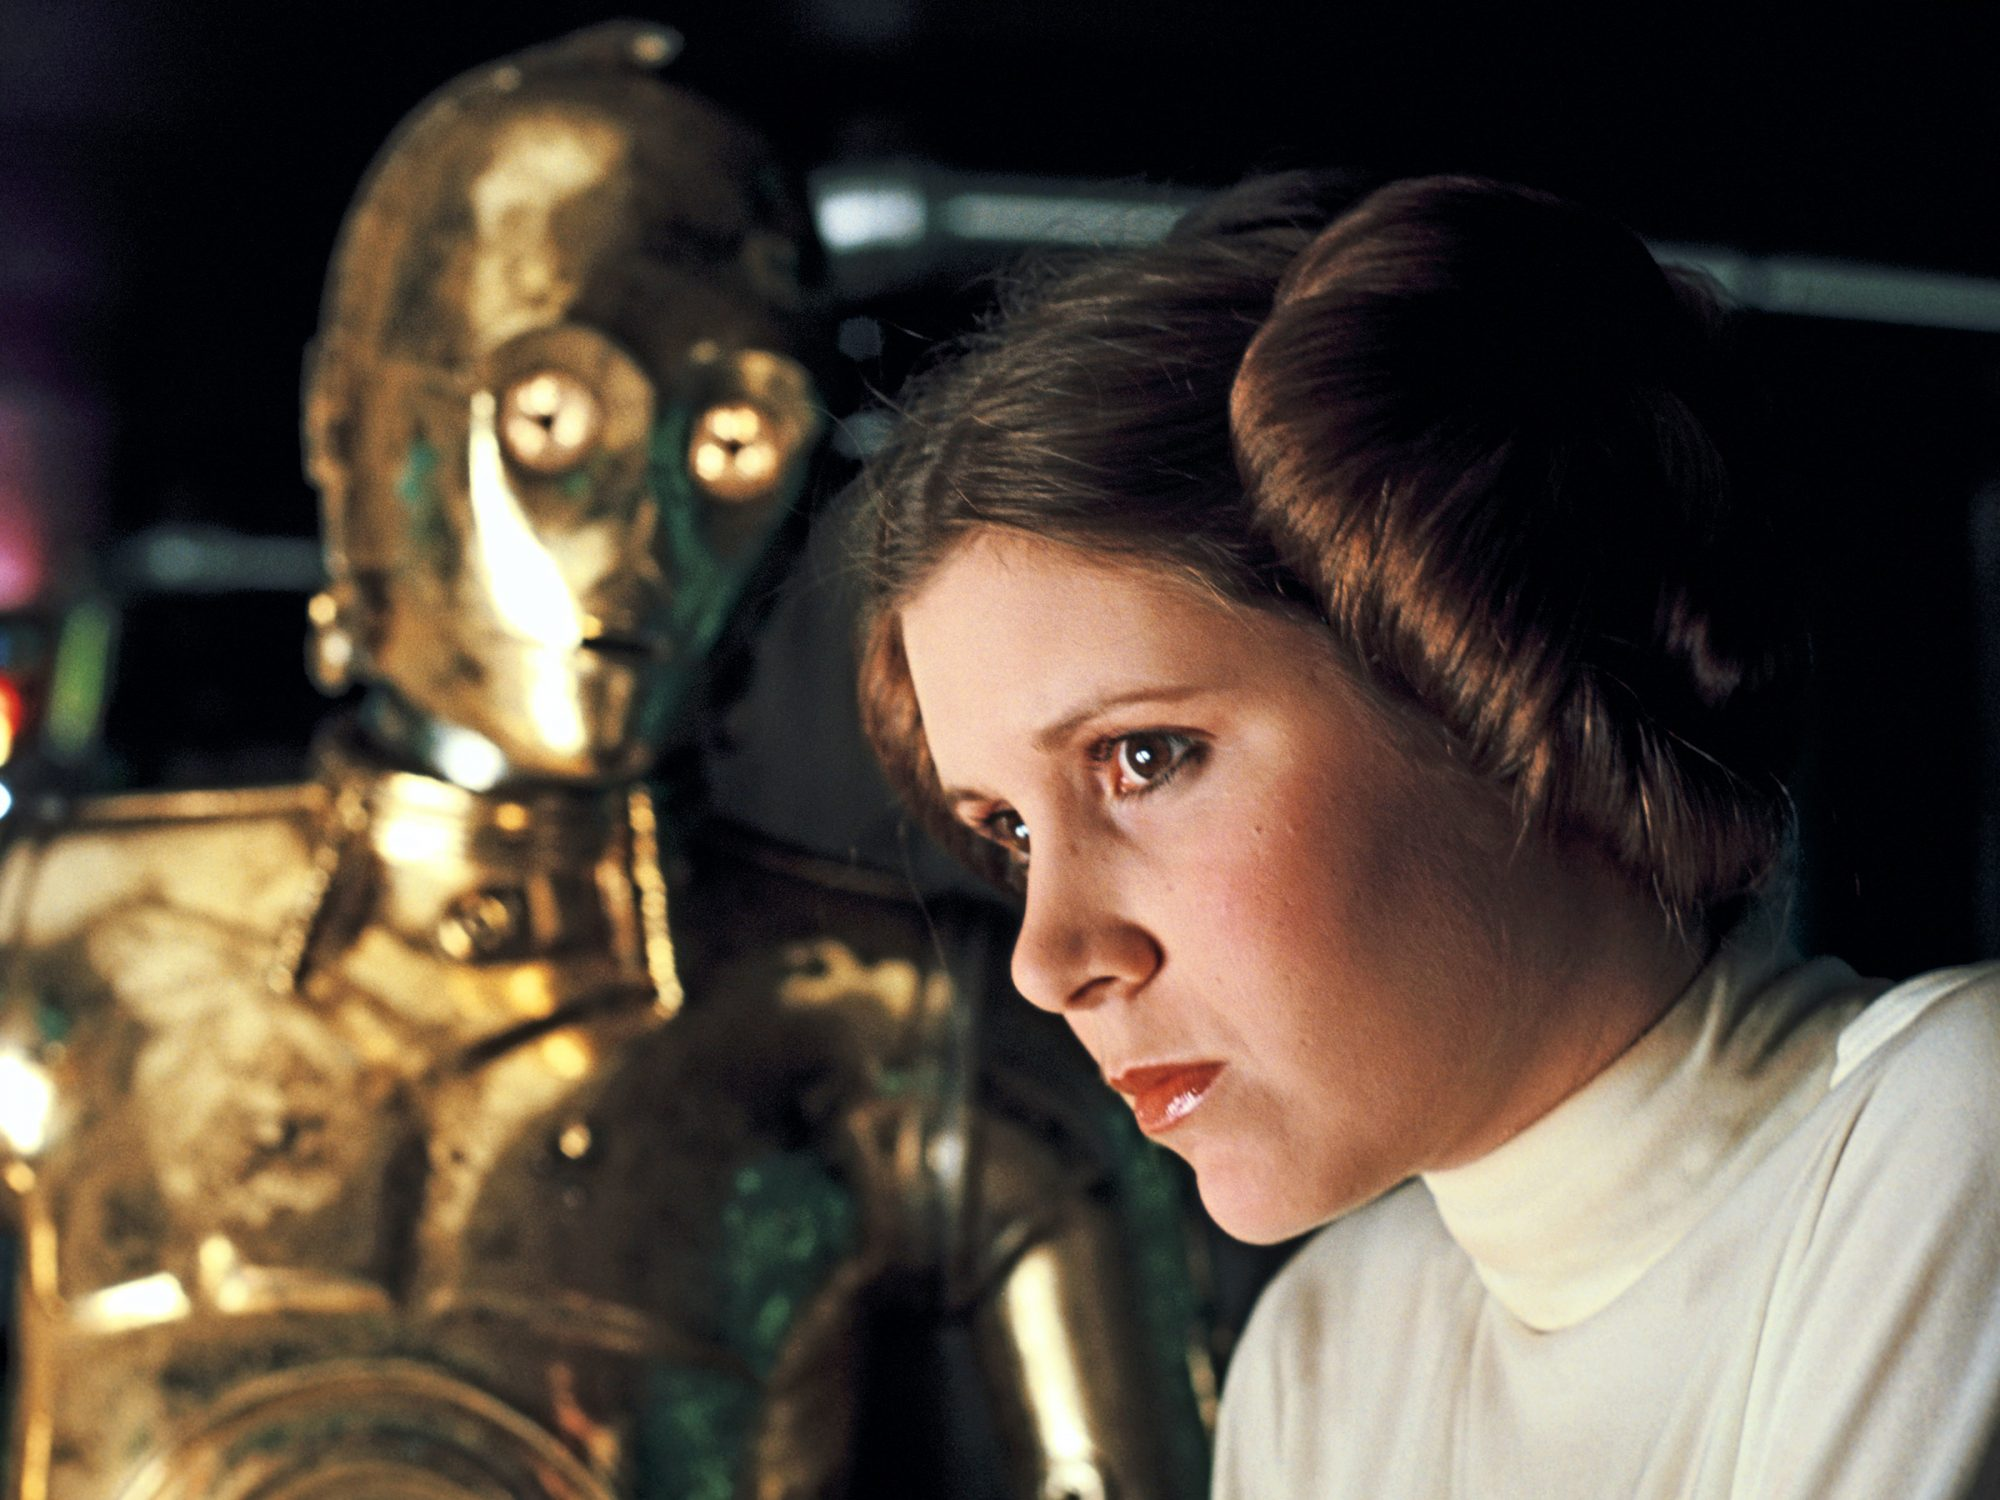 Star WarsAnthony Daniels as C-3PO and Carrie Fisher as Princess Leia